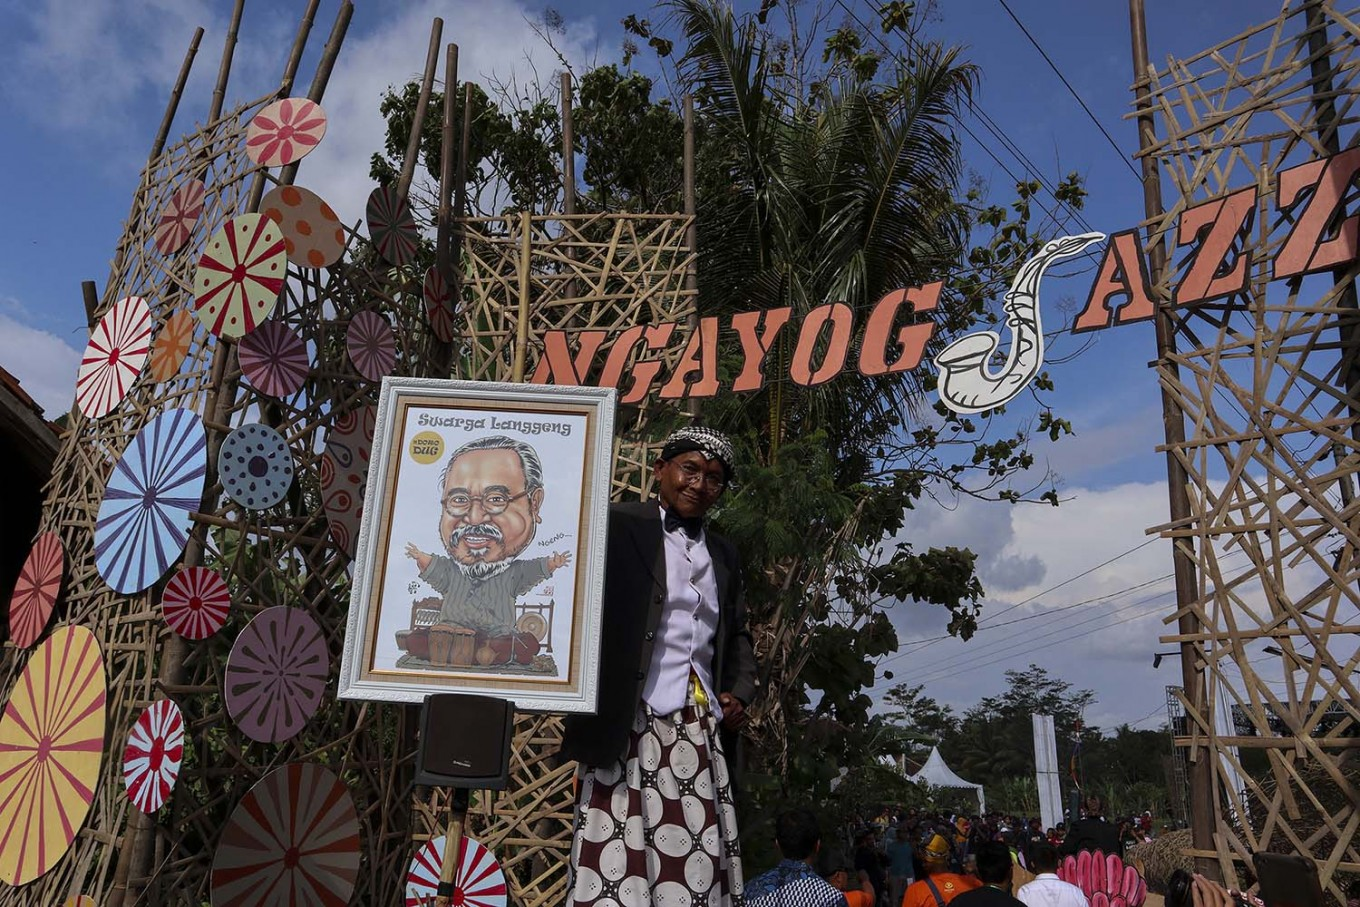 He is among us: A caricature of Djaduk Ferianto greets visitors to the 2019 Ngayogjazz Jazz Music Festival in Yogyakarta on Saturday. JP/Tarko Sudiarno